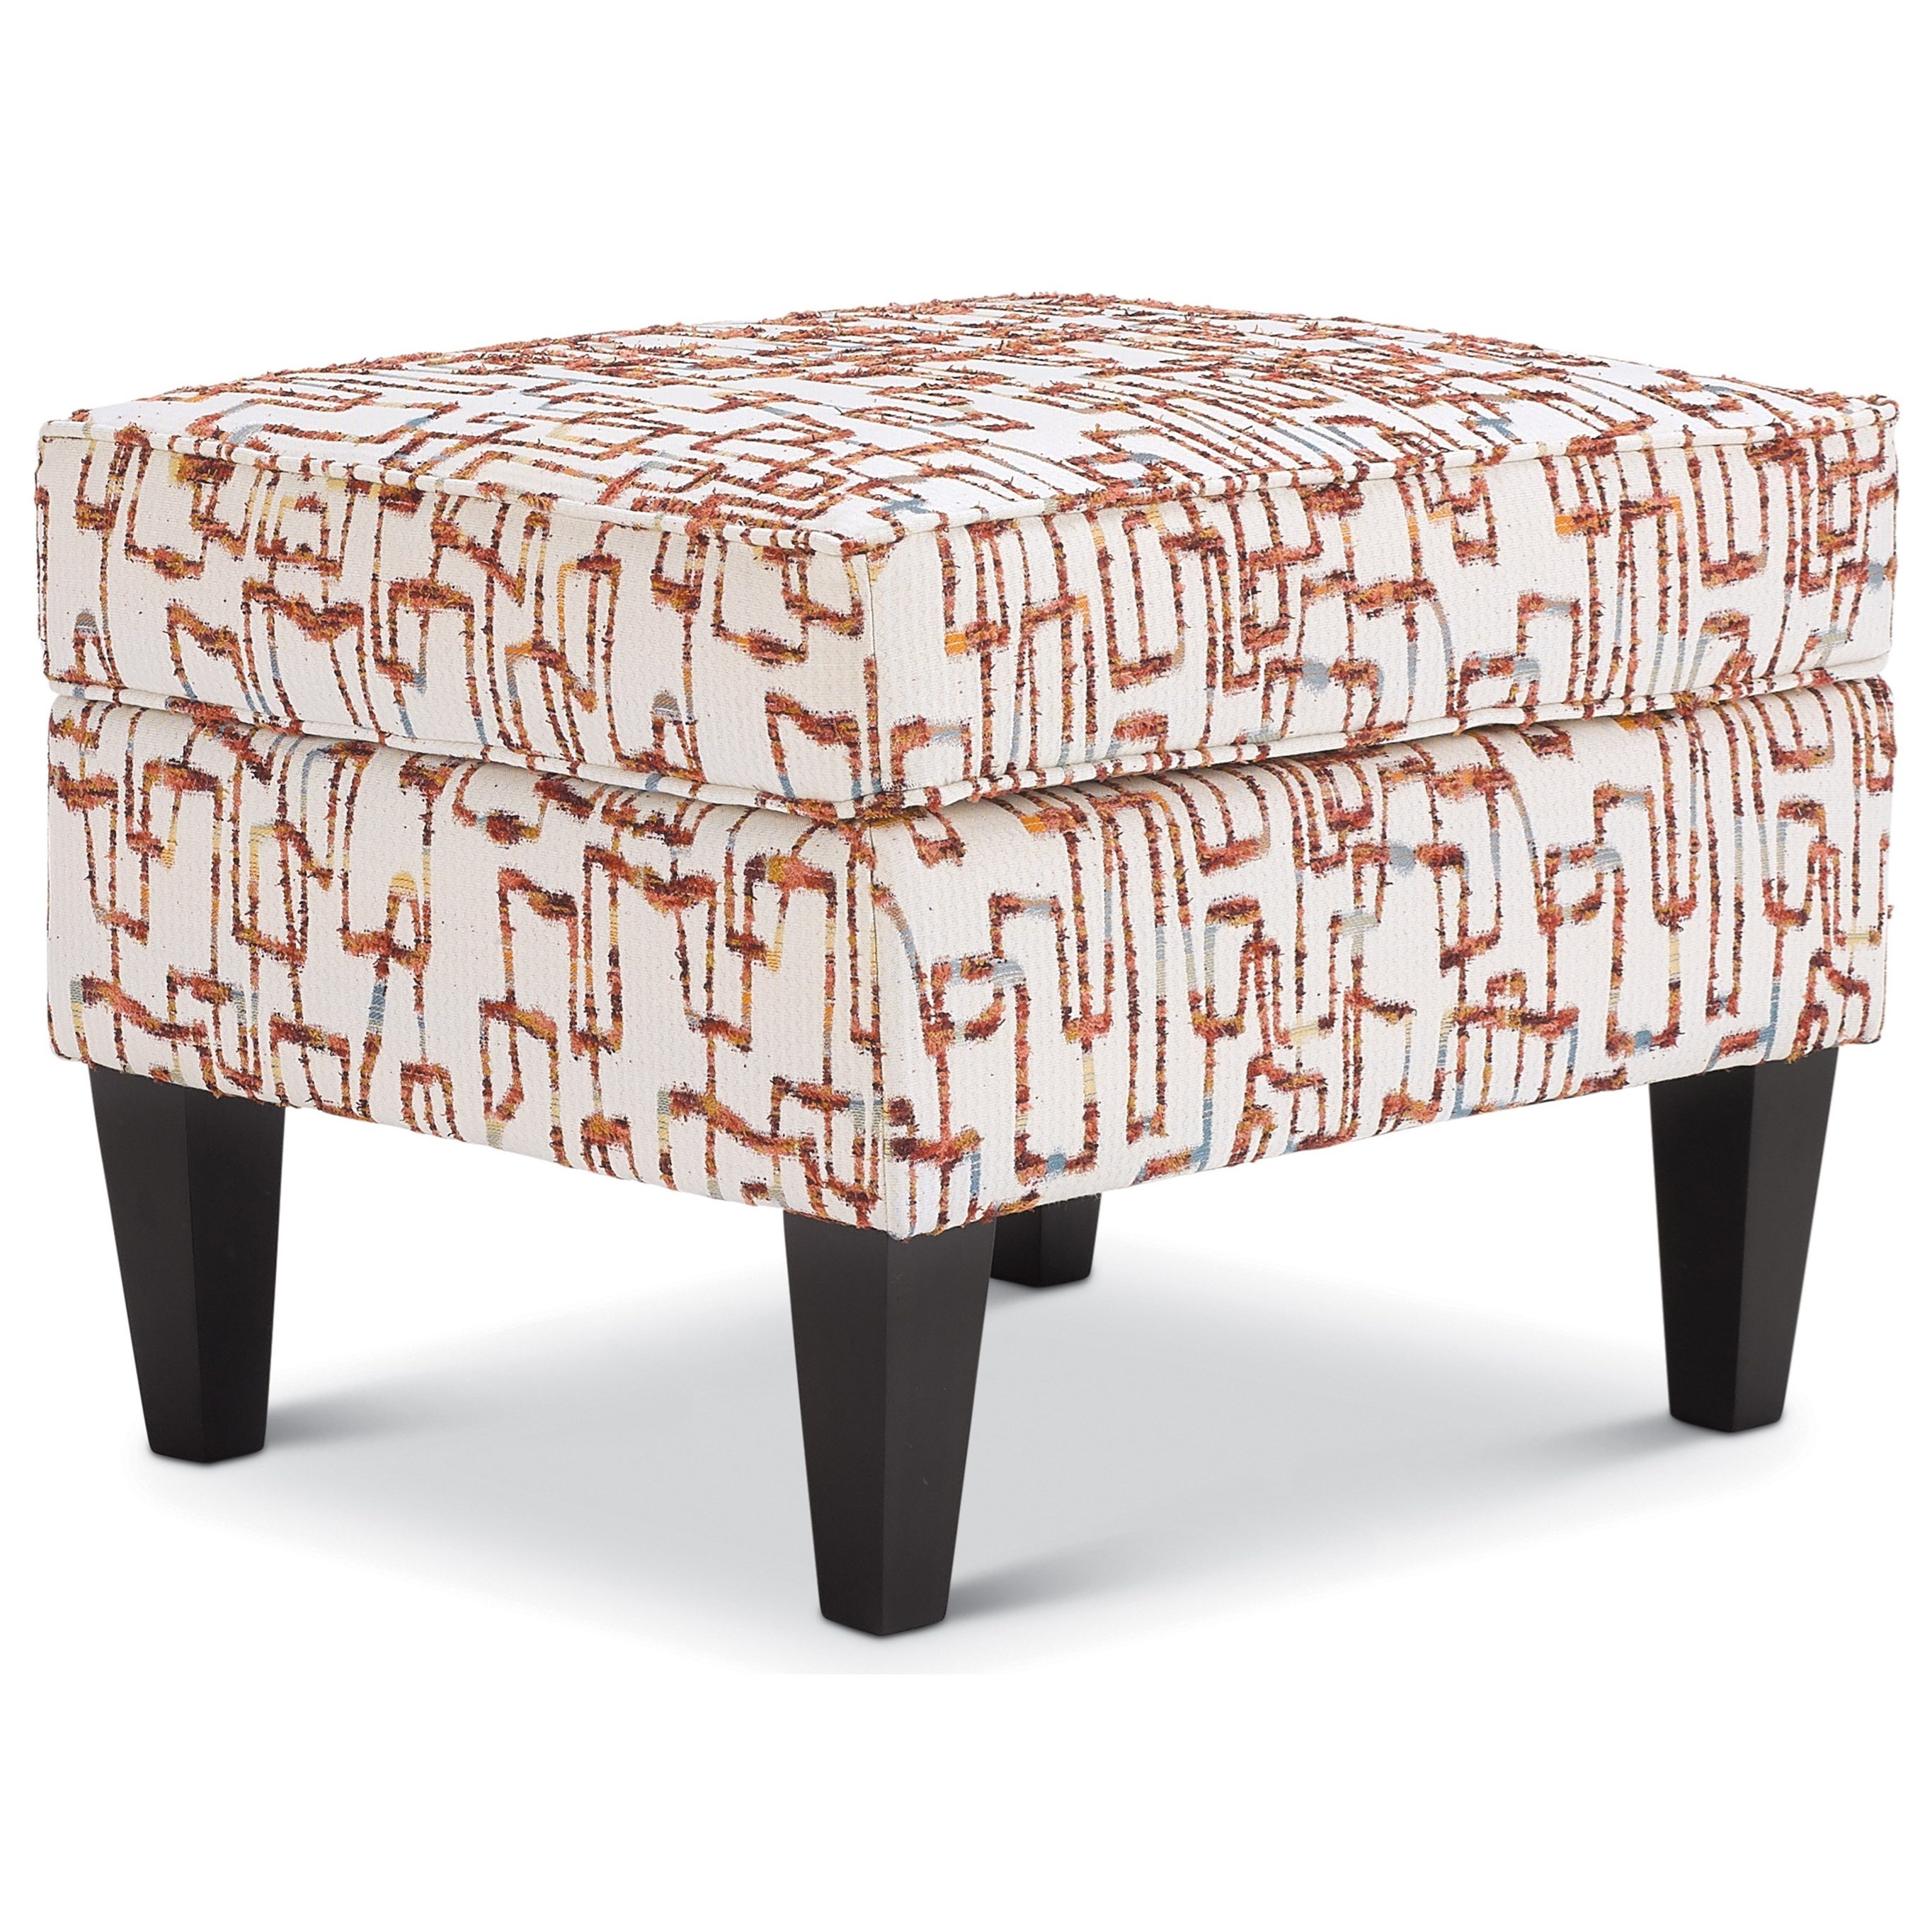 0004 Ottoman by Best Home Furnishings at Baer's Furniture